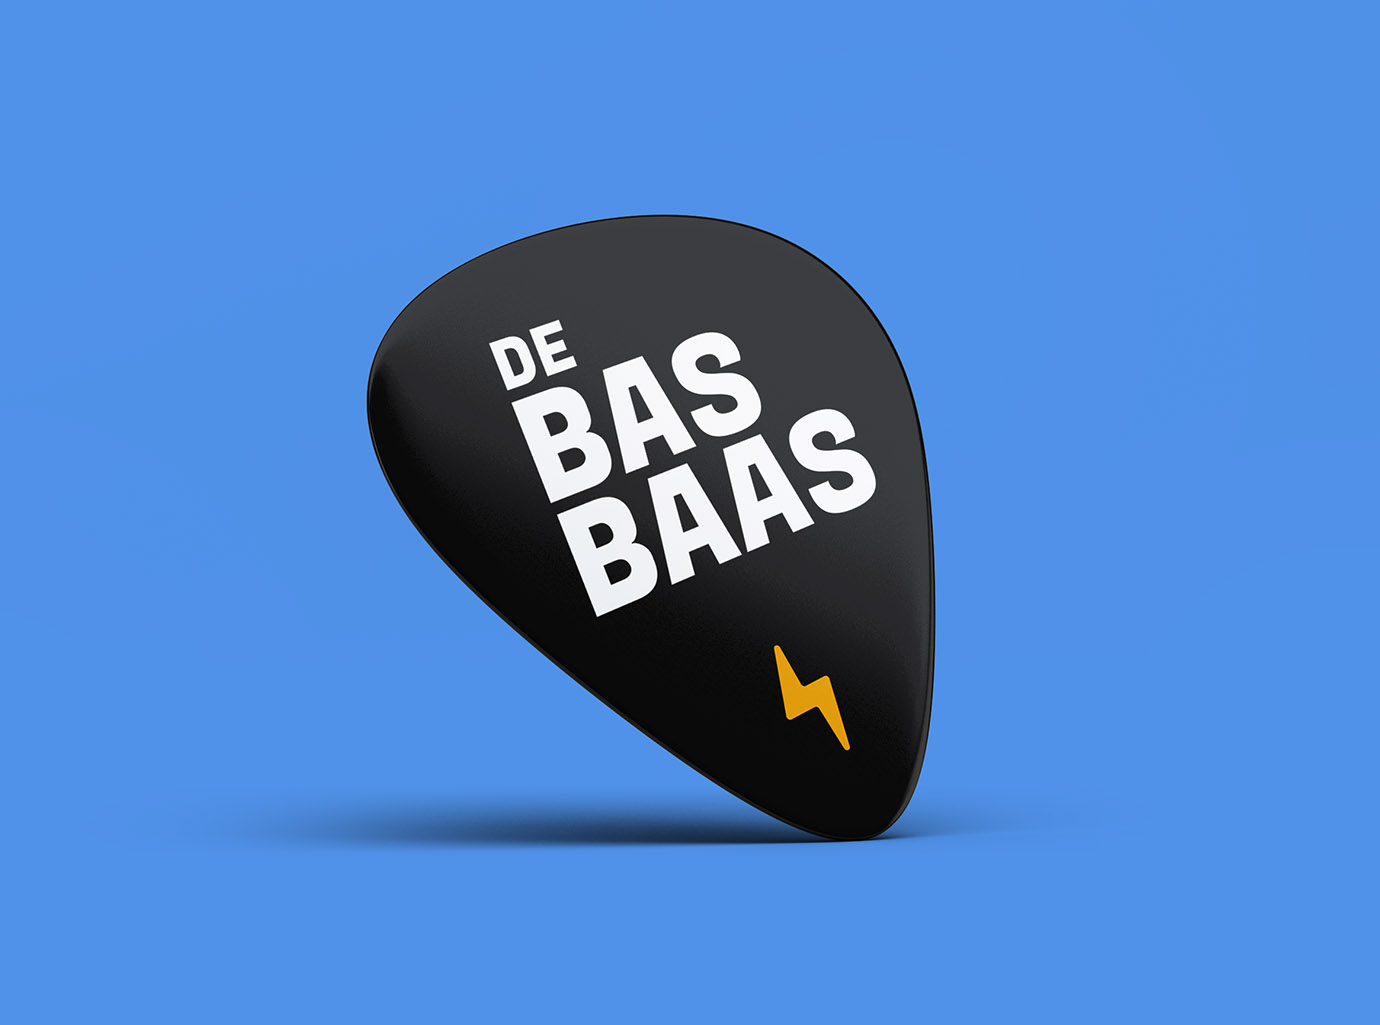 DeBasBaas guitar Pick